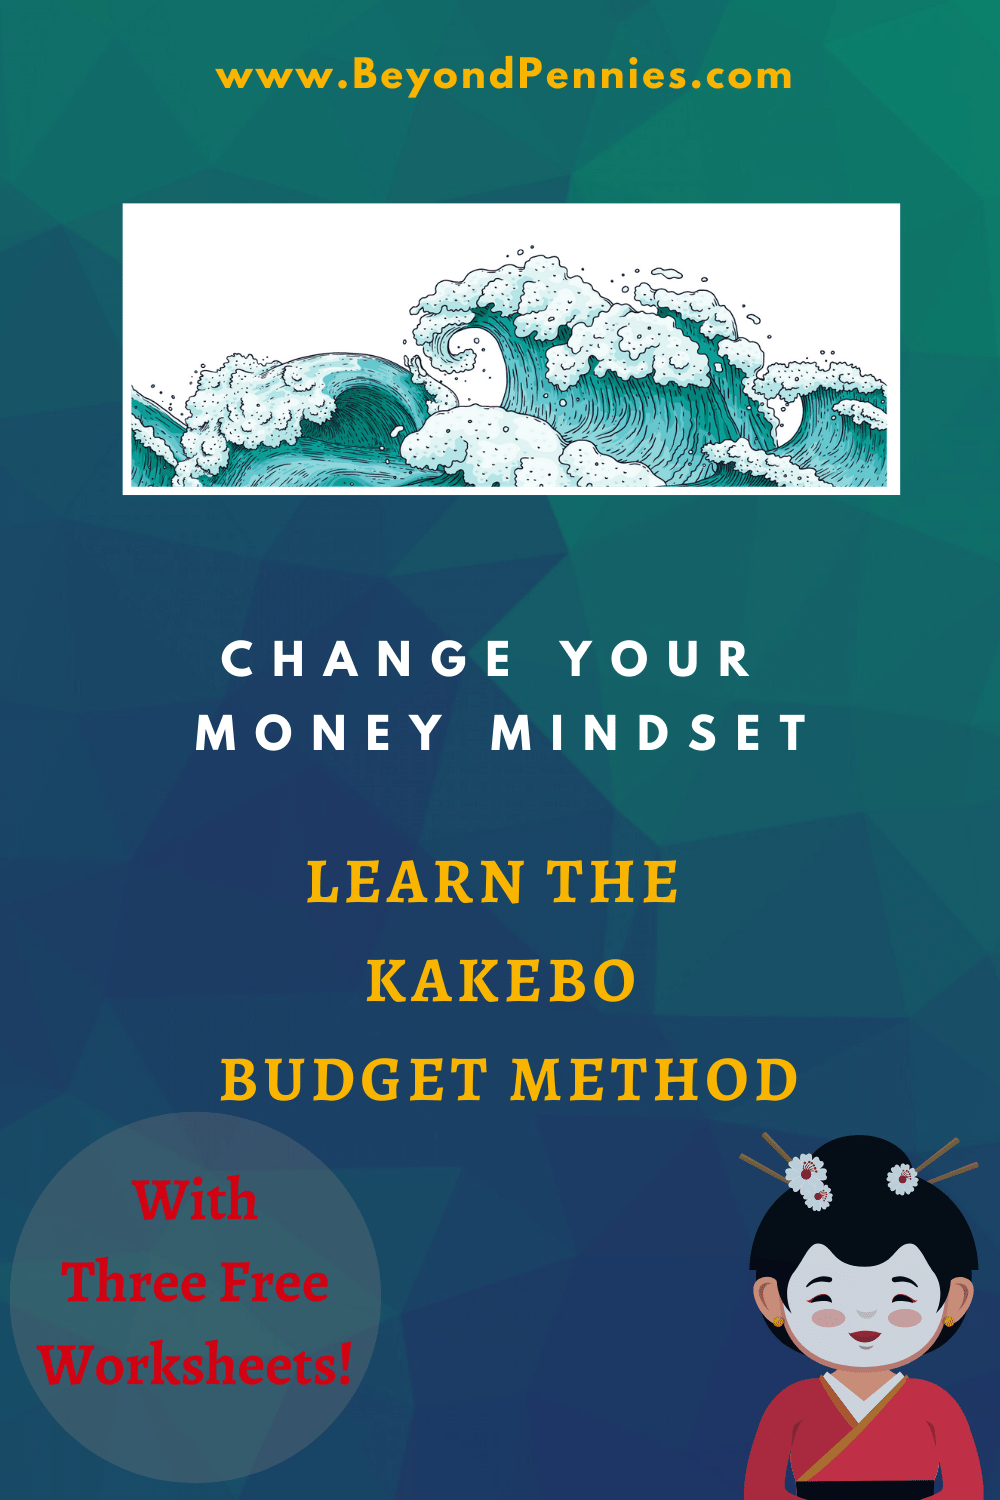 Change Your Money Mindset with the Kakebo Budget